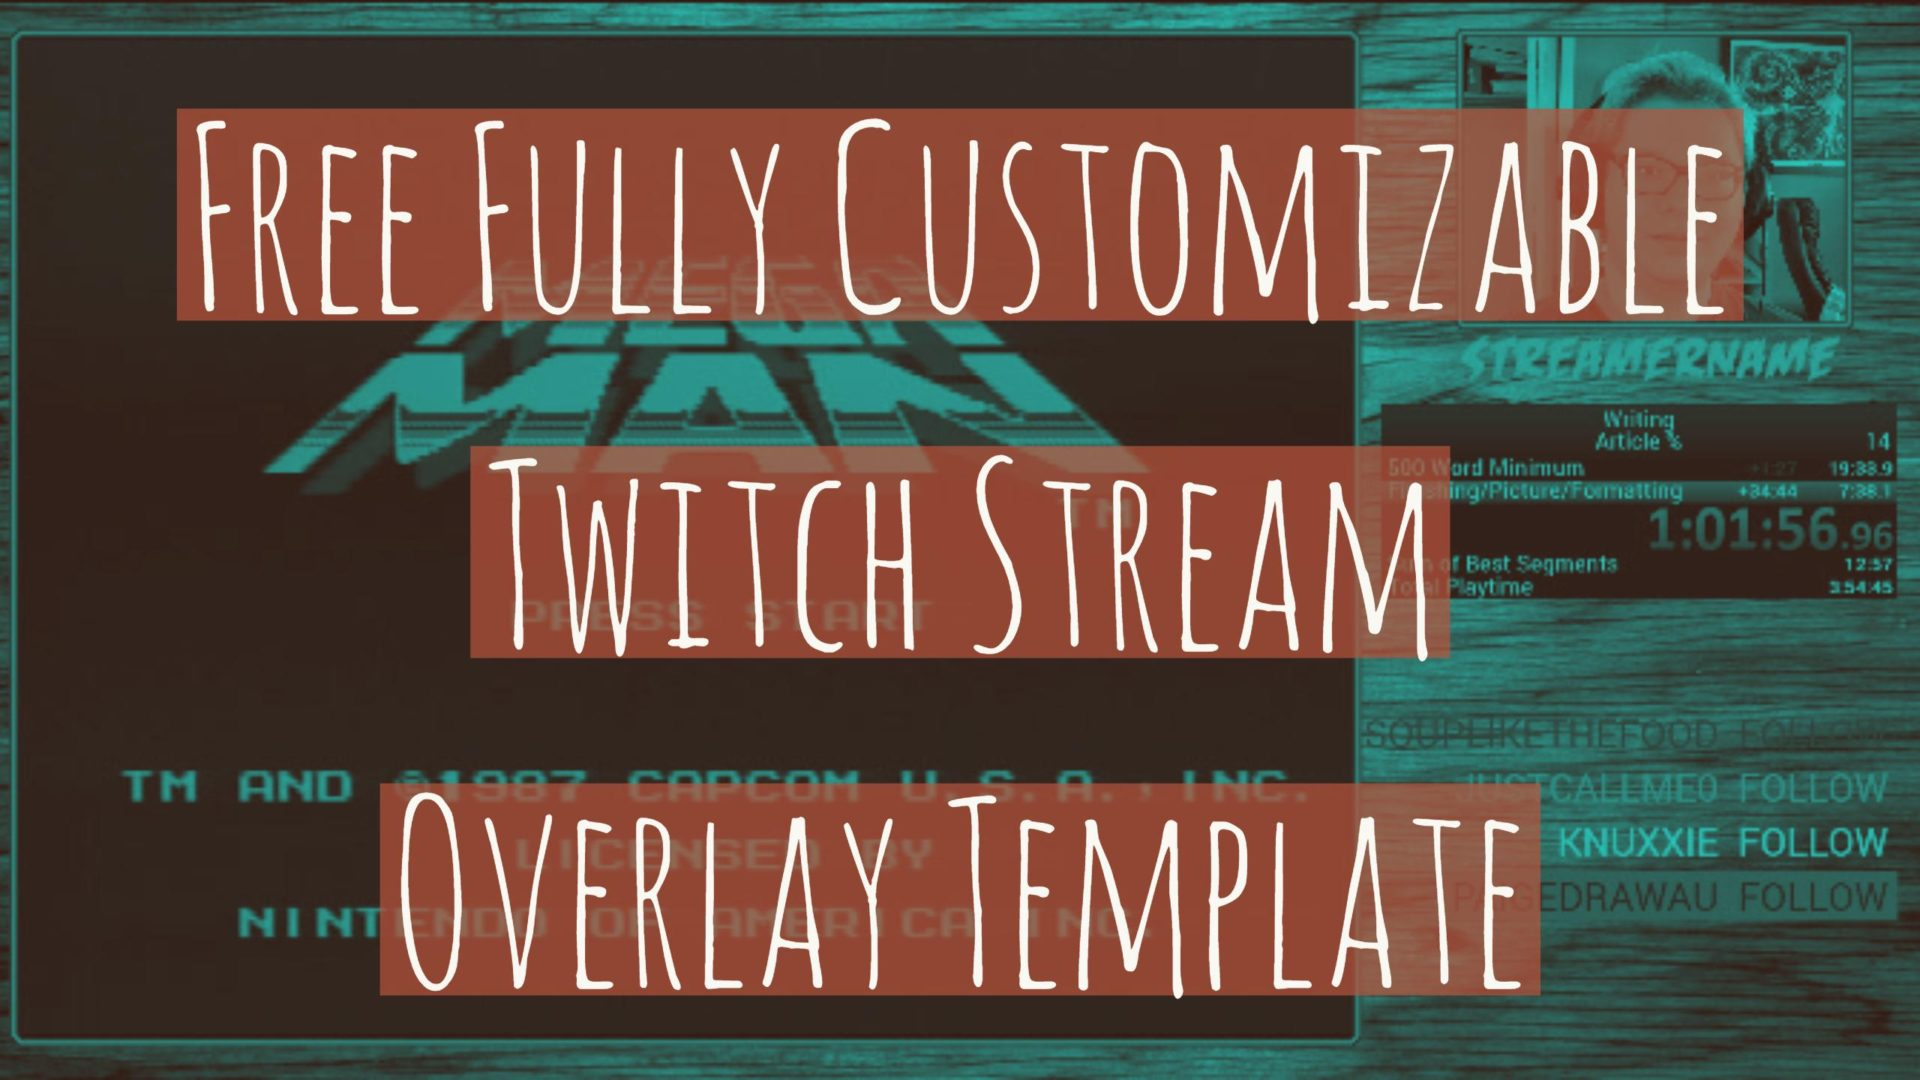 Free Fully Customizable Twitch Stream Overlay Template Floydasaurus